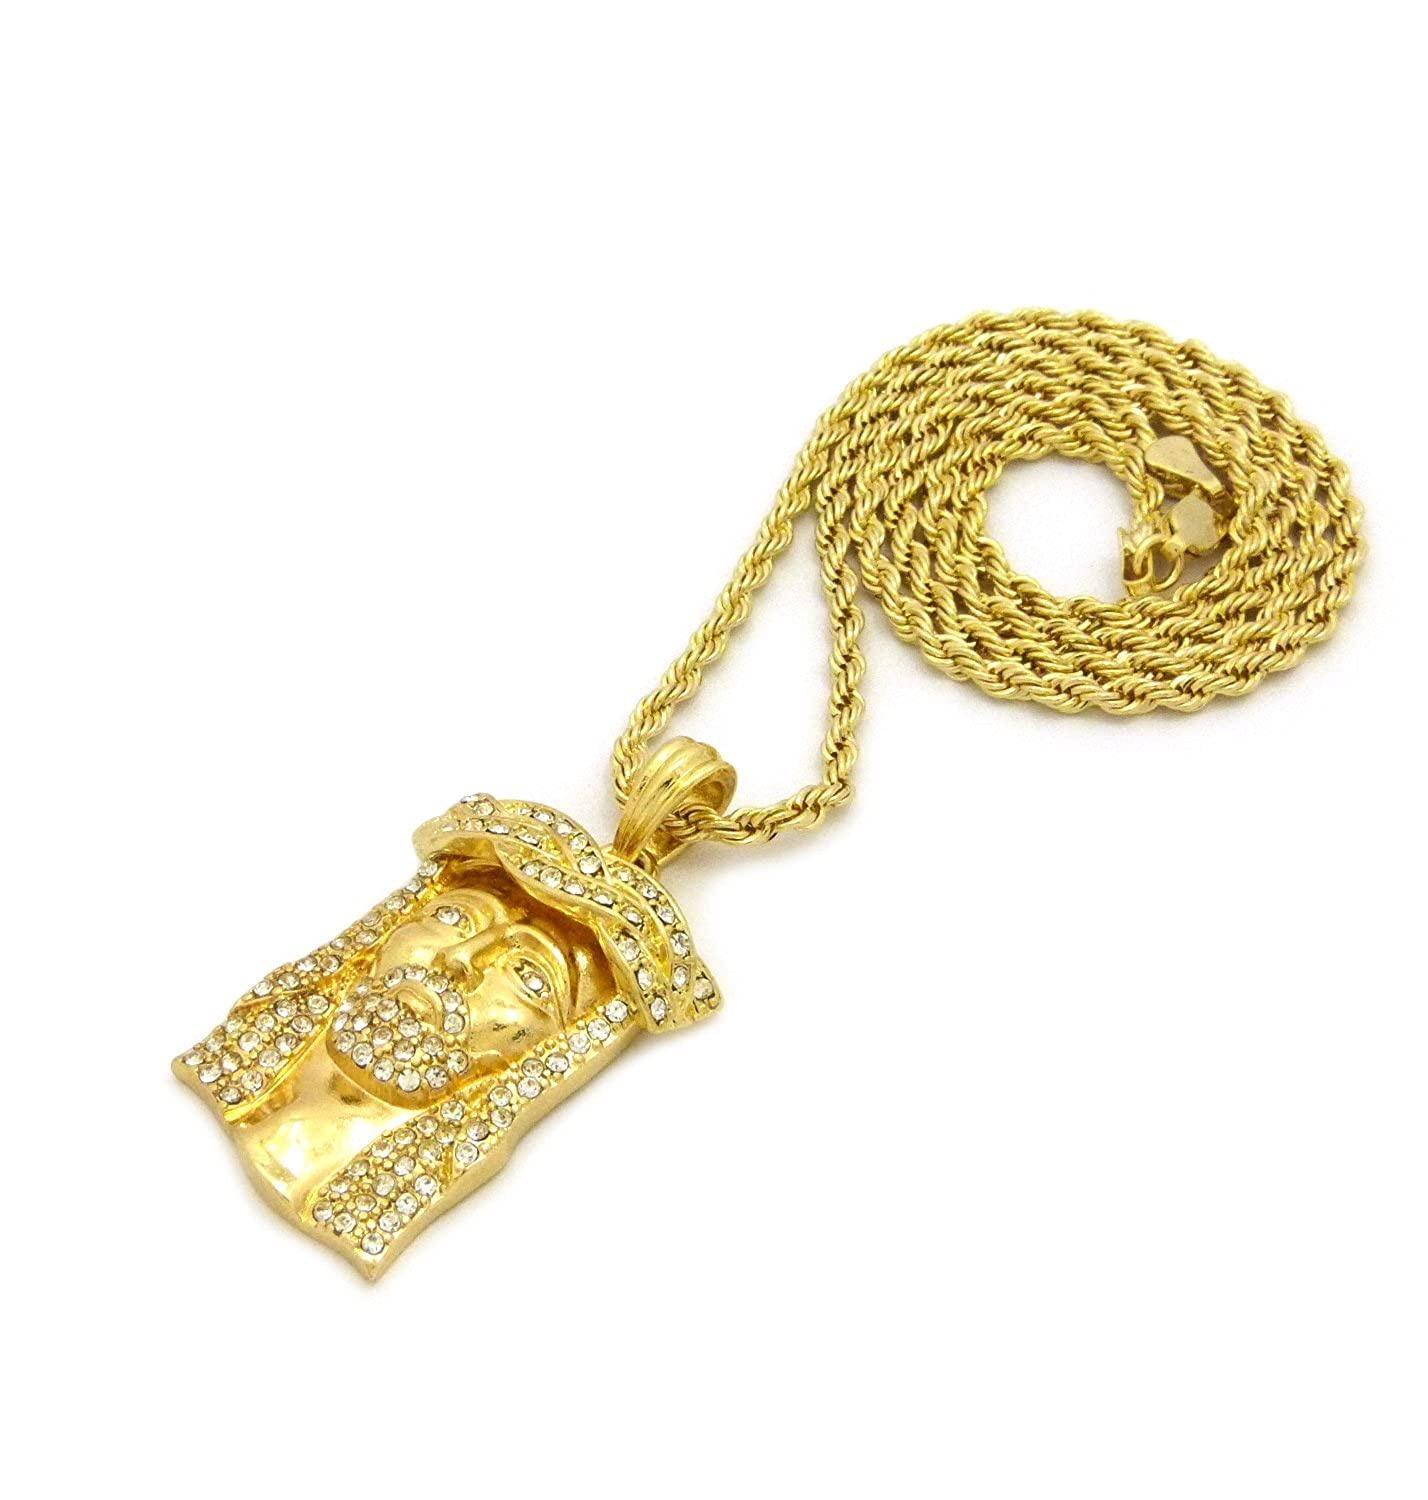 XQP39RCG NEW ICED OUT JESUS FACE PENDANT /&3mm//24 ROPE CHAIN HIP HOP NECKLACE